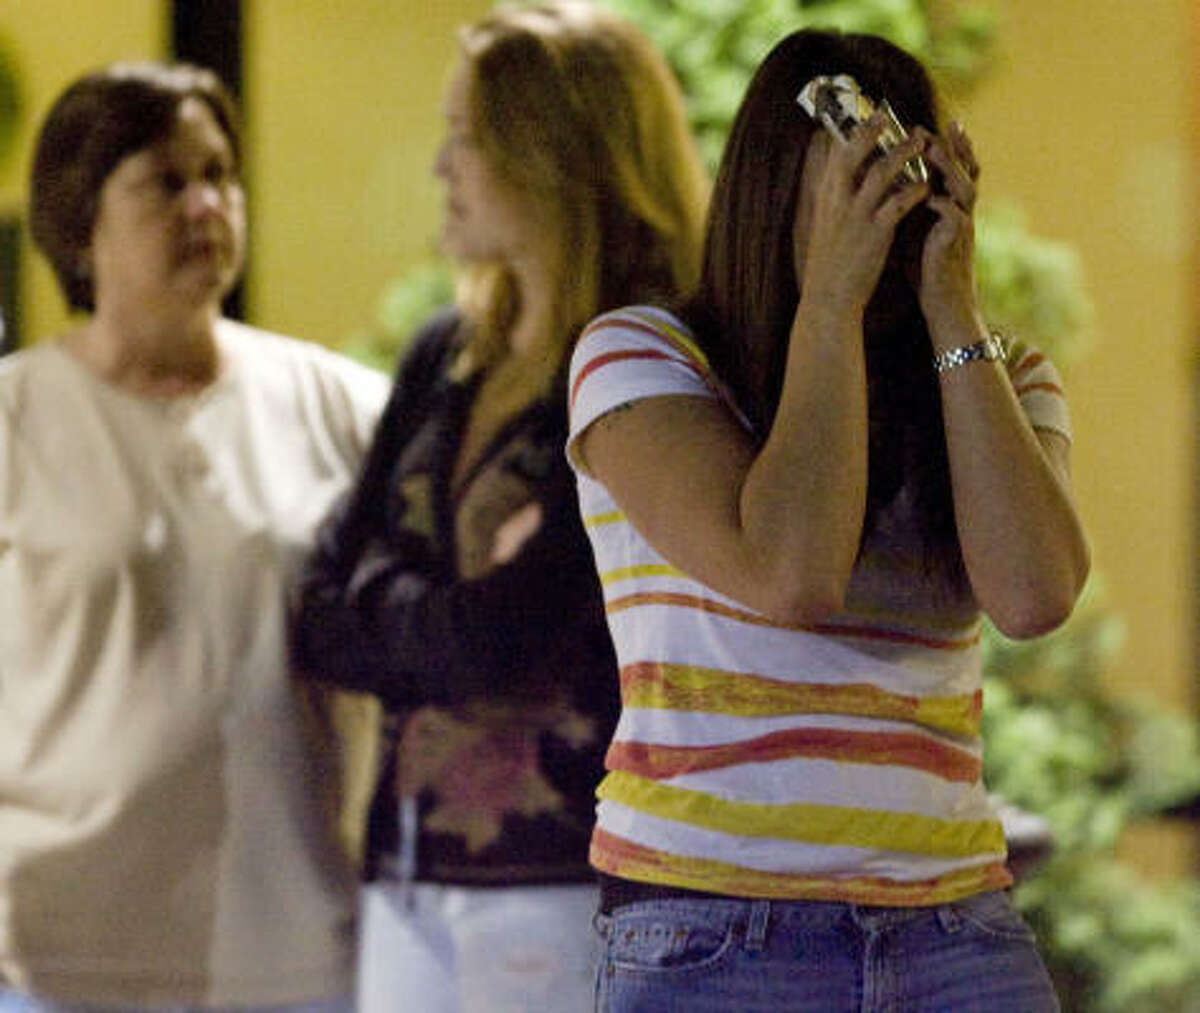 Micalet Kemp, right, throws her hands up in an act of emotion,Thursday April 22, 2010. At the Crowne Plaza hotel in Kenner La. knowing her loved one is still missing in the aftermath of the Deepwater Horizon oil rig explosion.